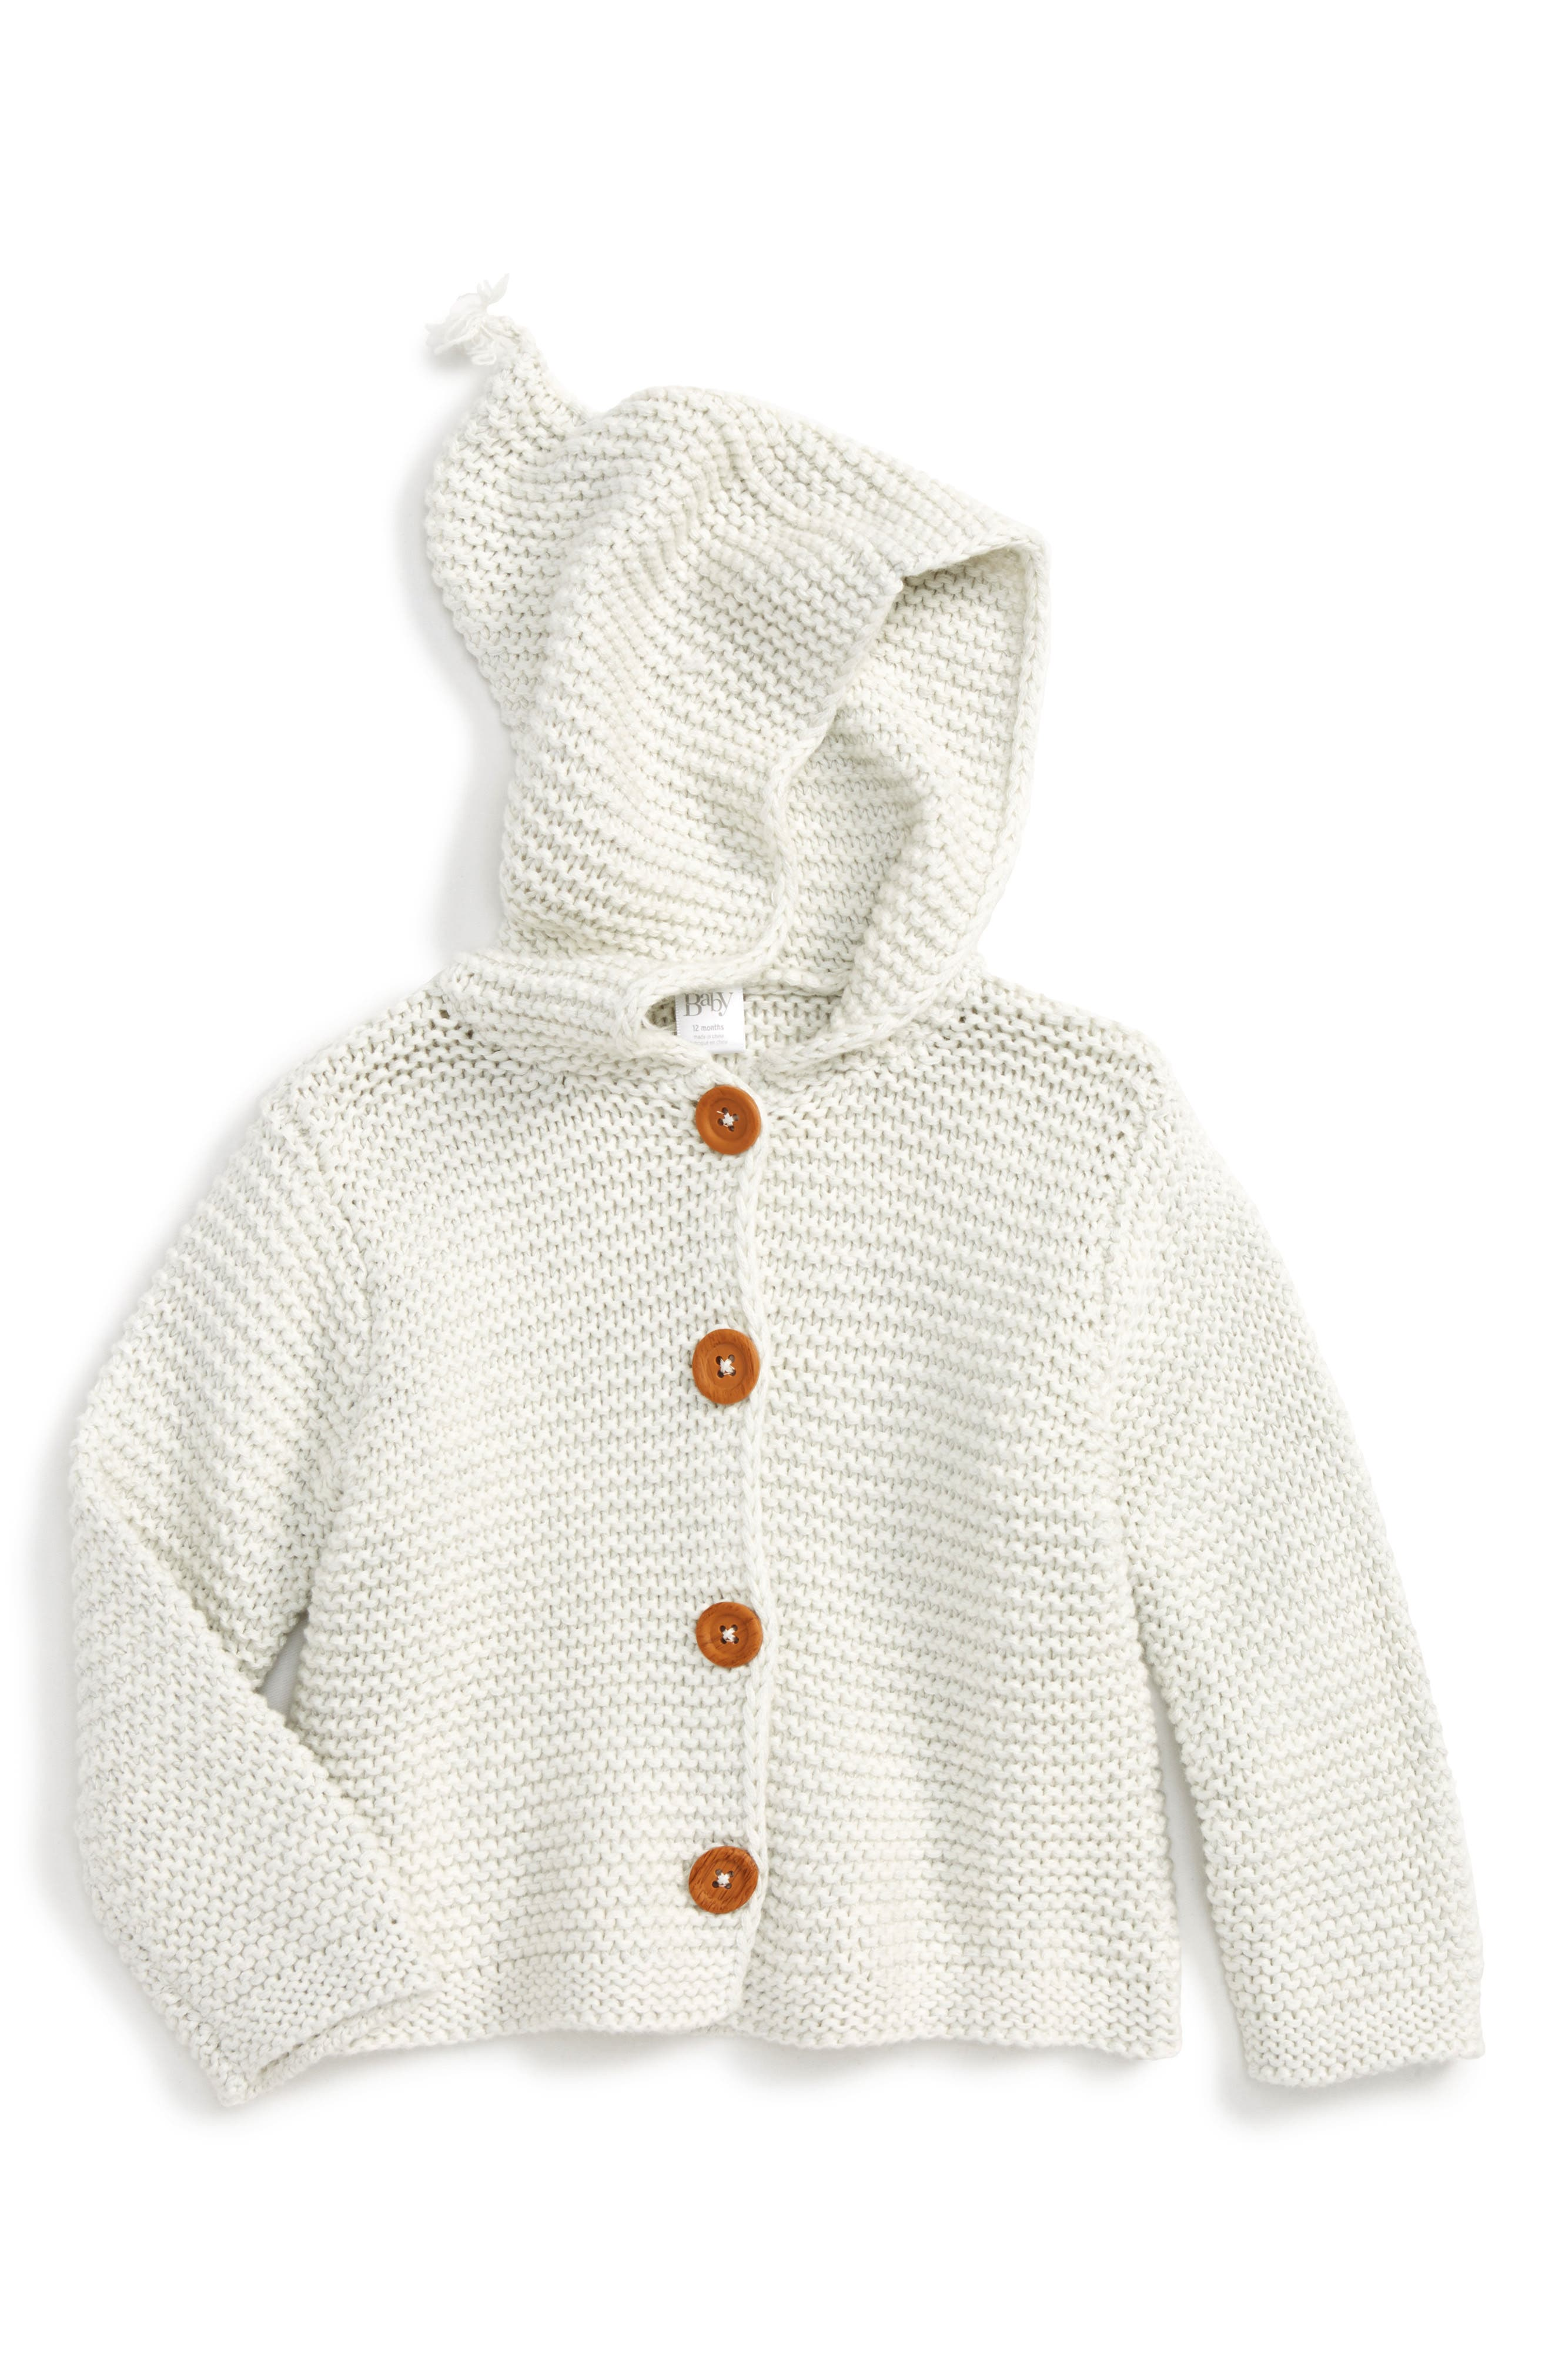 Main Image - Nordstrom Baby Organic Cotton Hooded Cardigan (Baby)